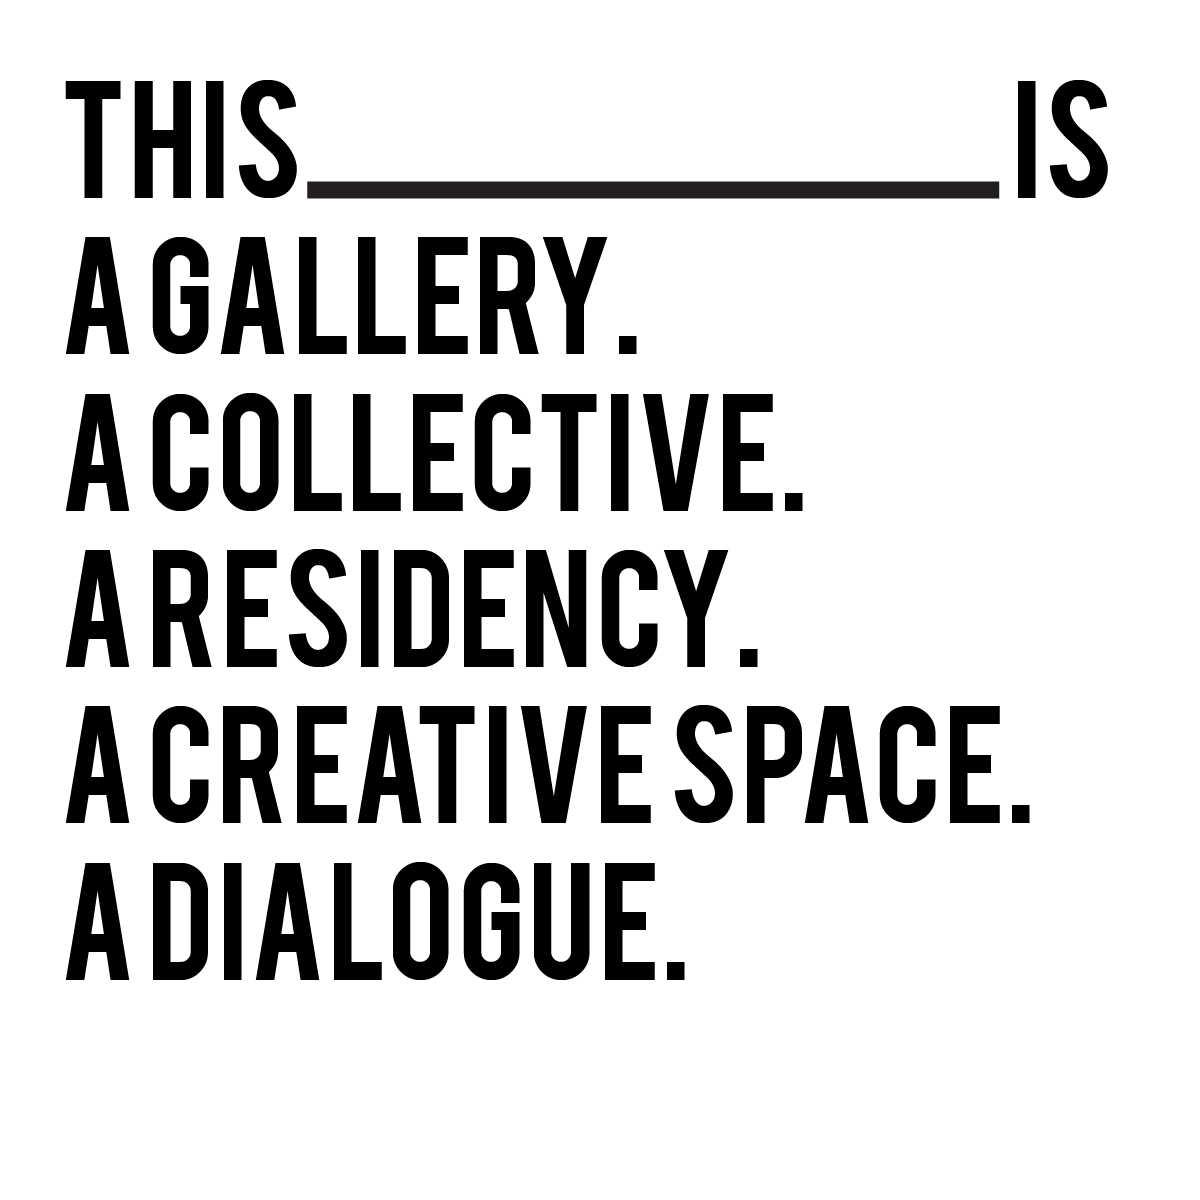 gallery, collective, residency, dialogue